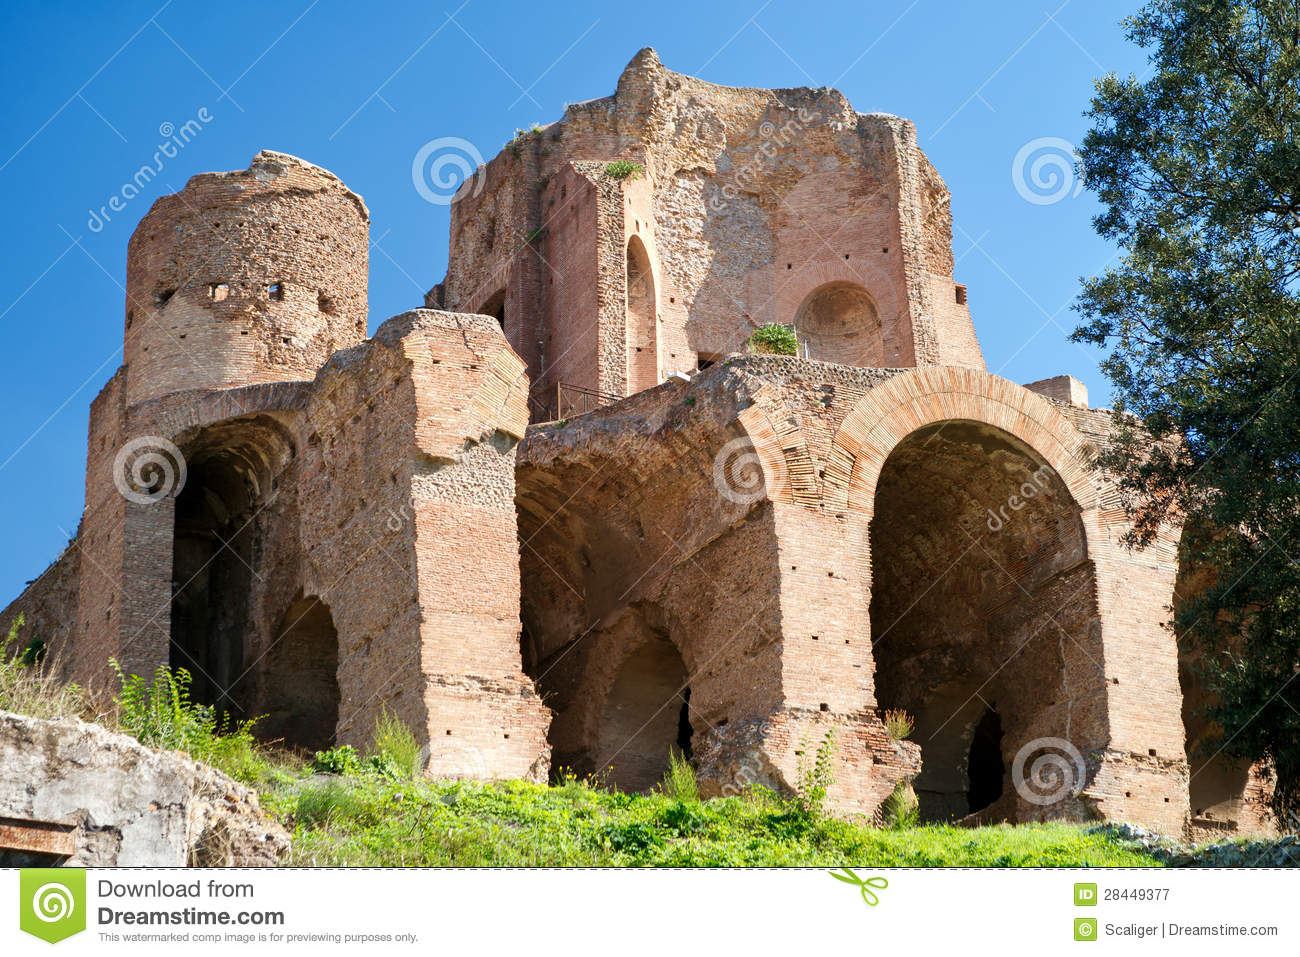 Ruins at the Palatine Hill in Rome